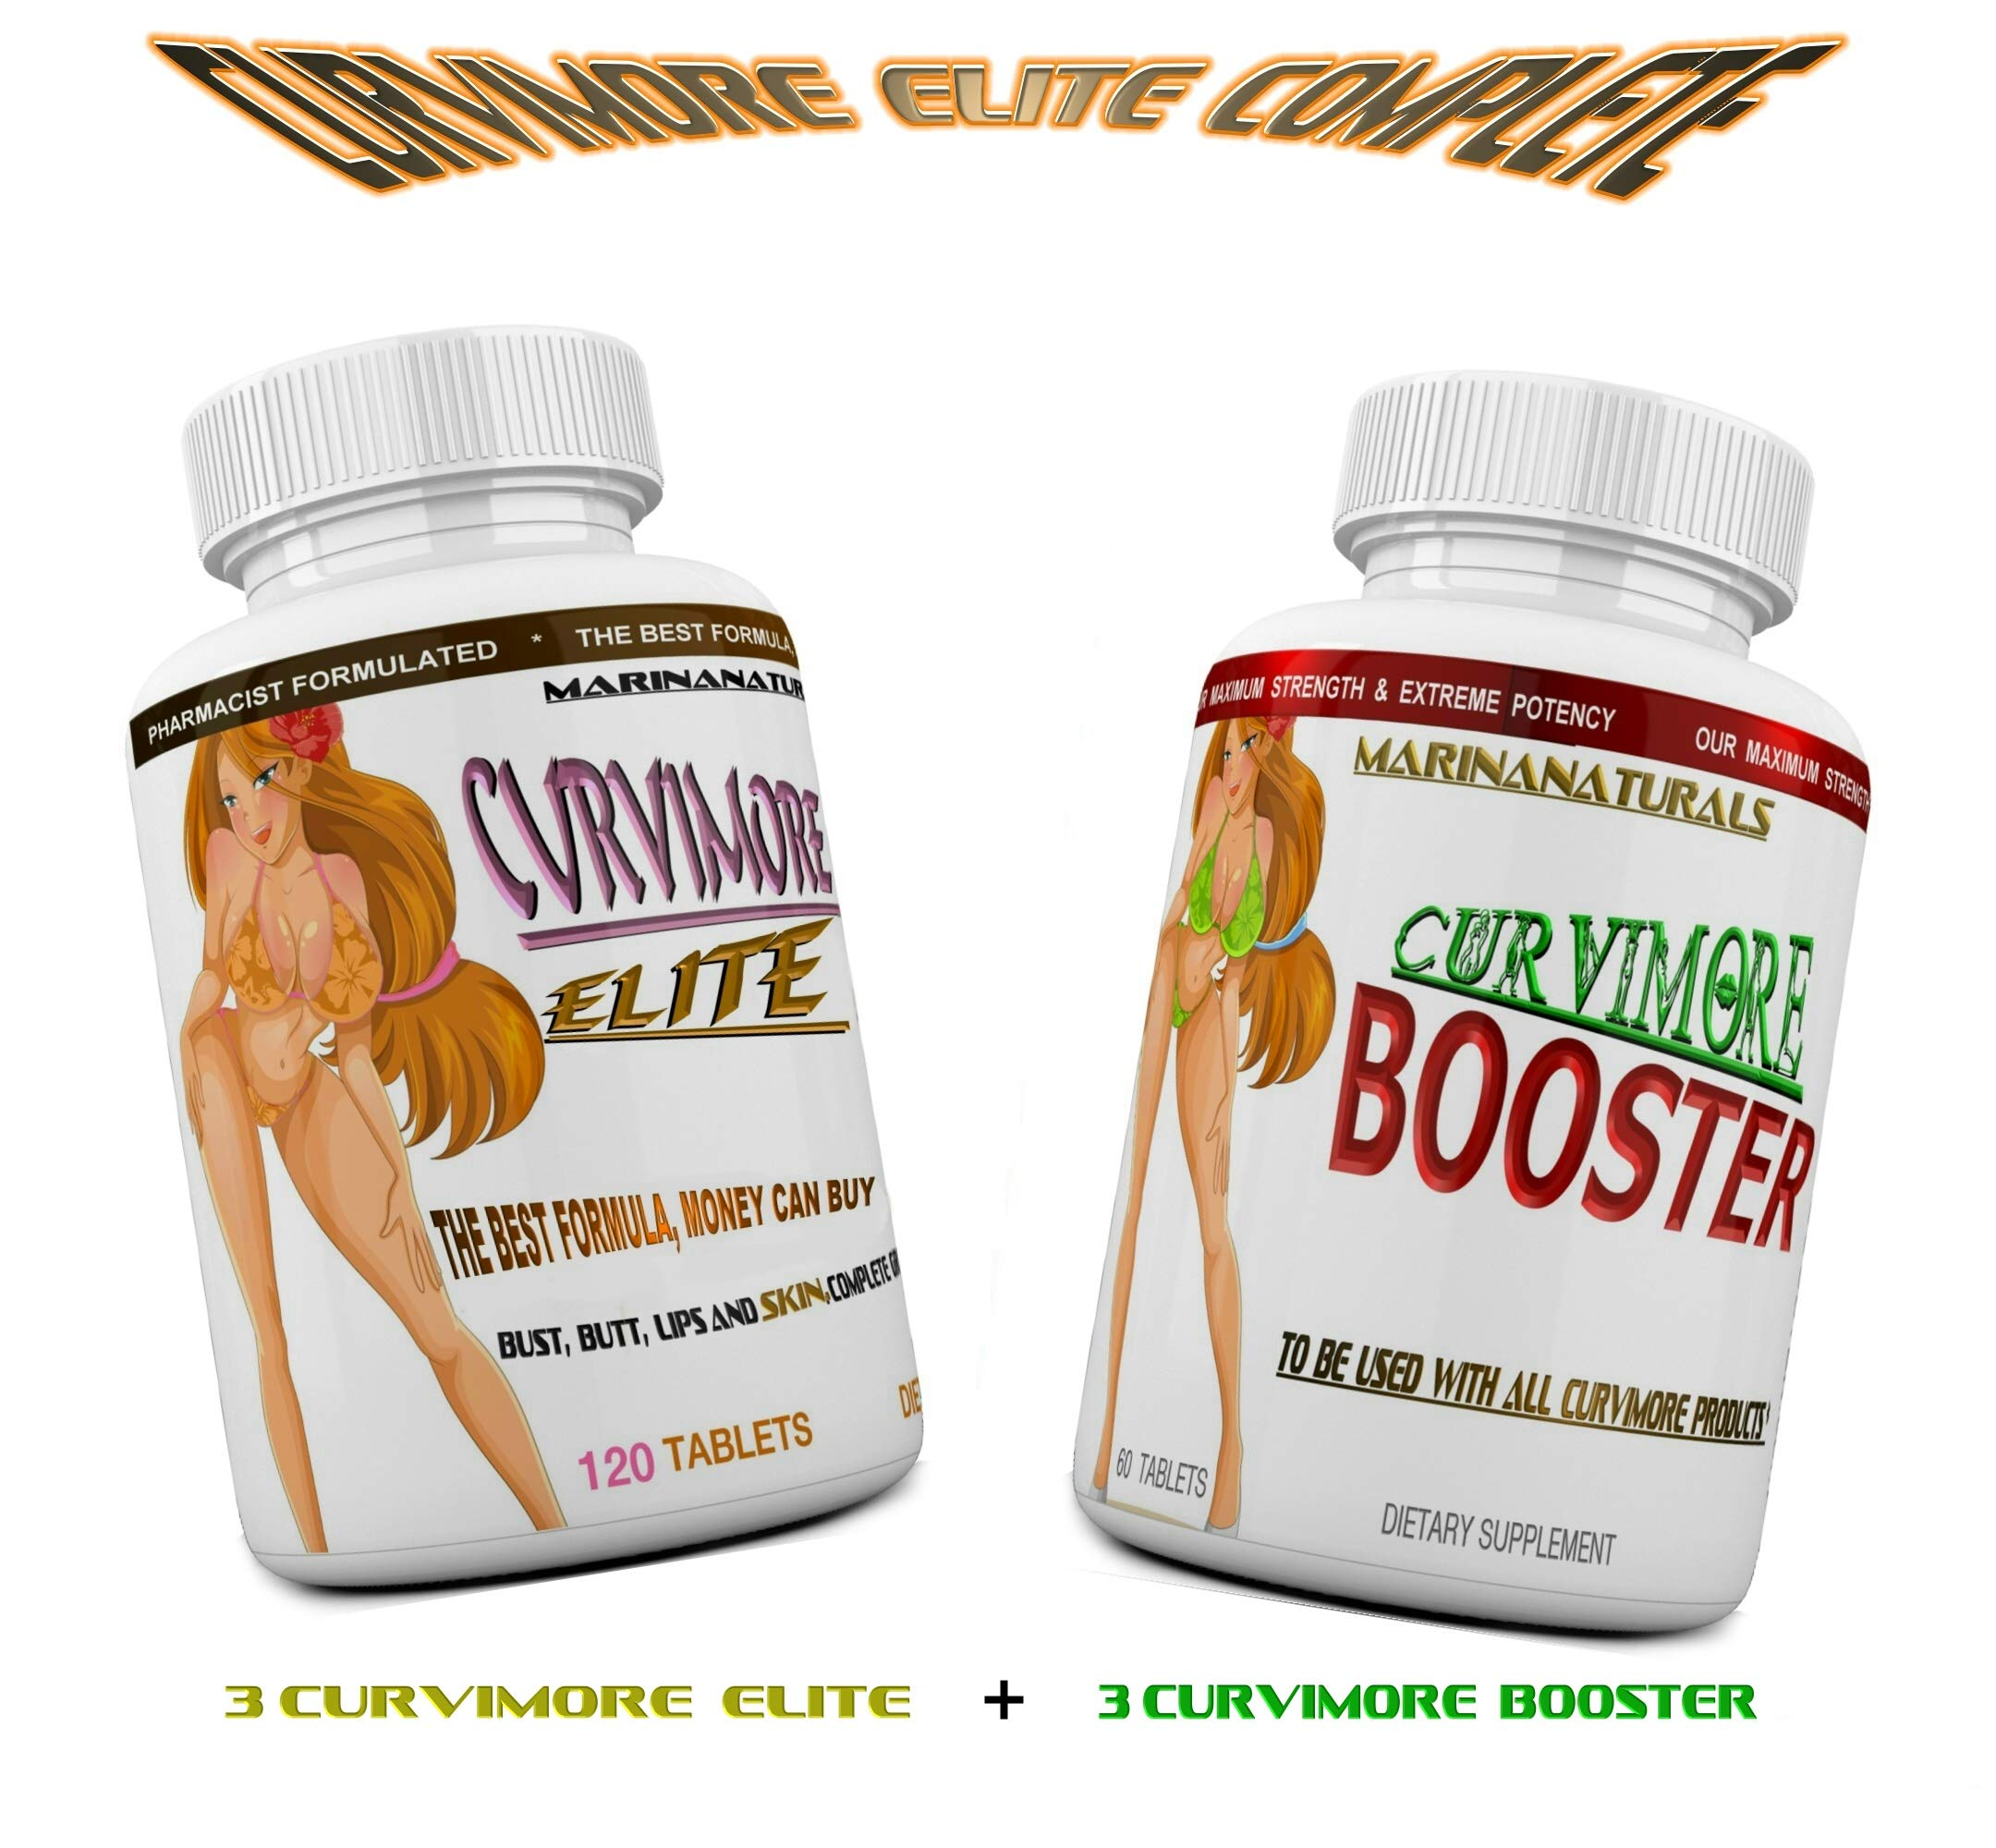 CURVIMORE Elite Complete ☀ Our Advanced Natural Breast Enlargement, Butt Enhancement, Bust Enhancement Lip Plumping & Skin Tightening Pills - Fuller Breasts, Booty & Brazilian Butts. 3-Month Course